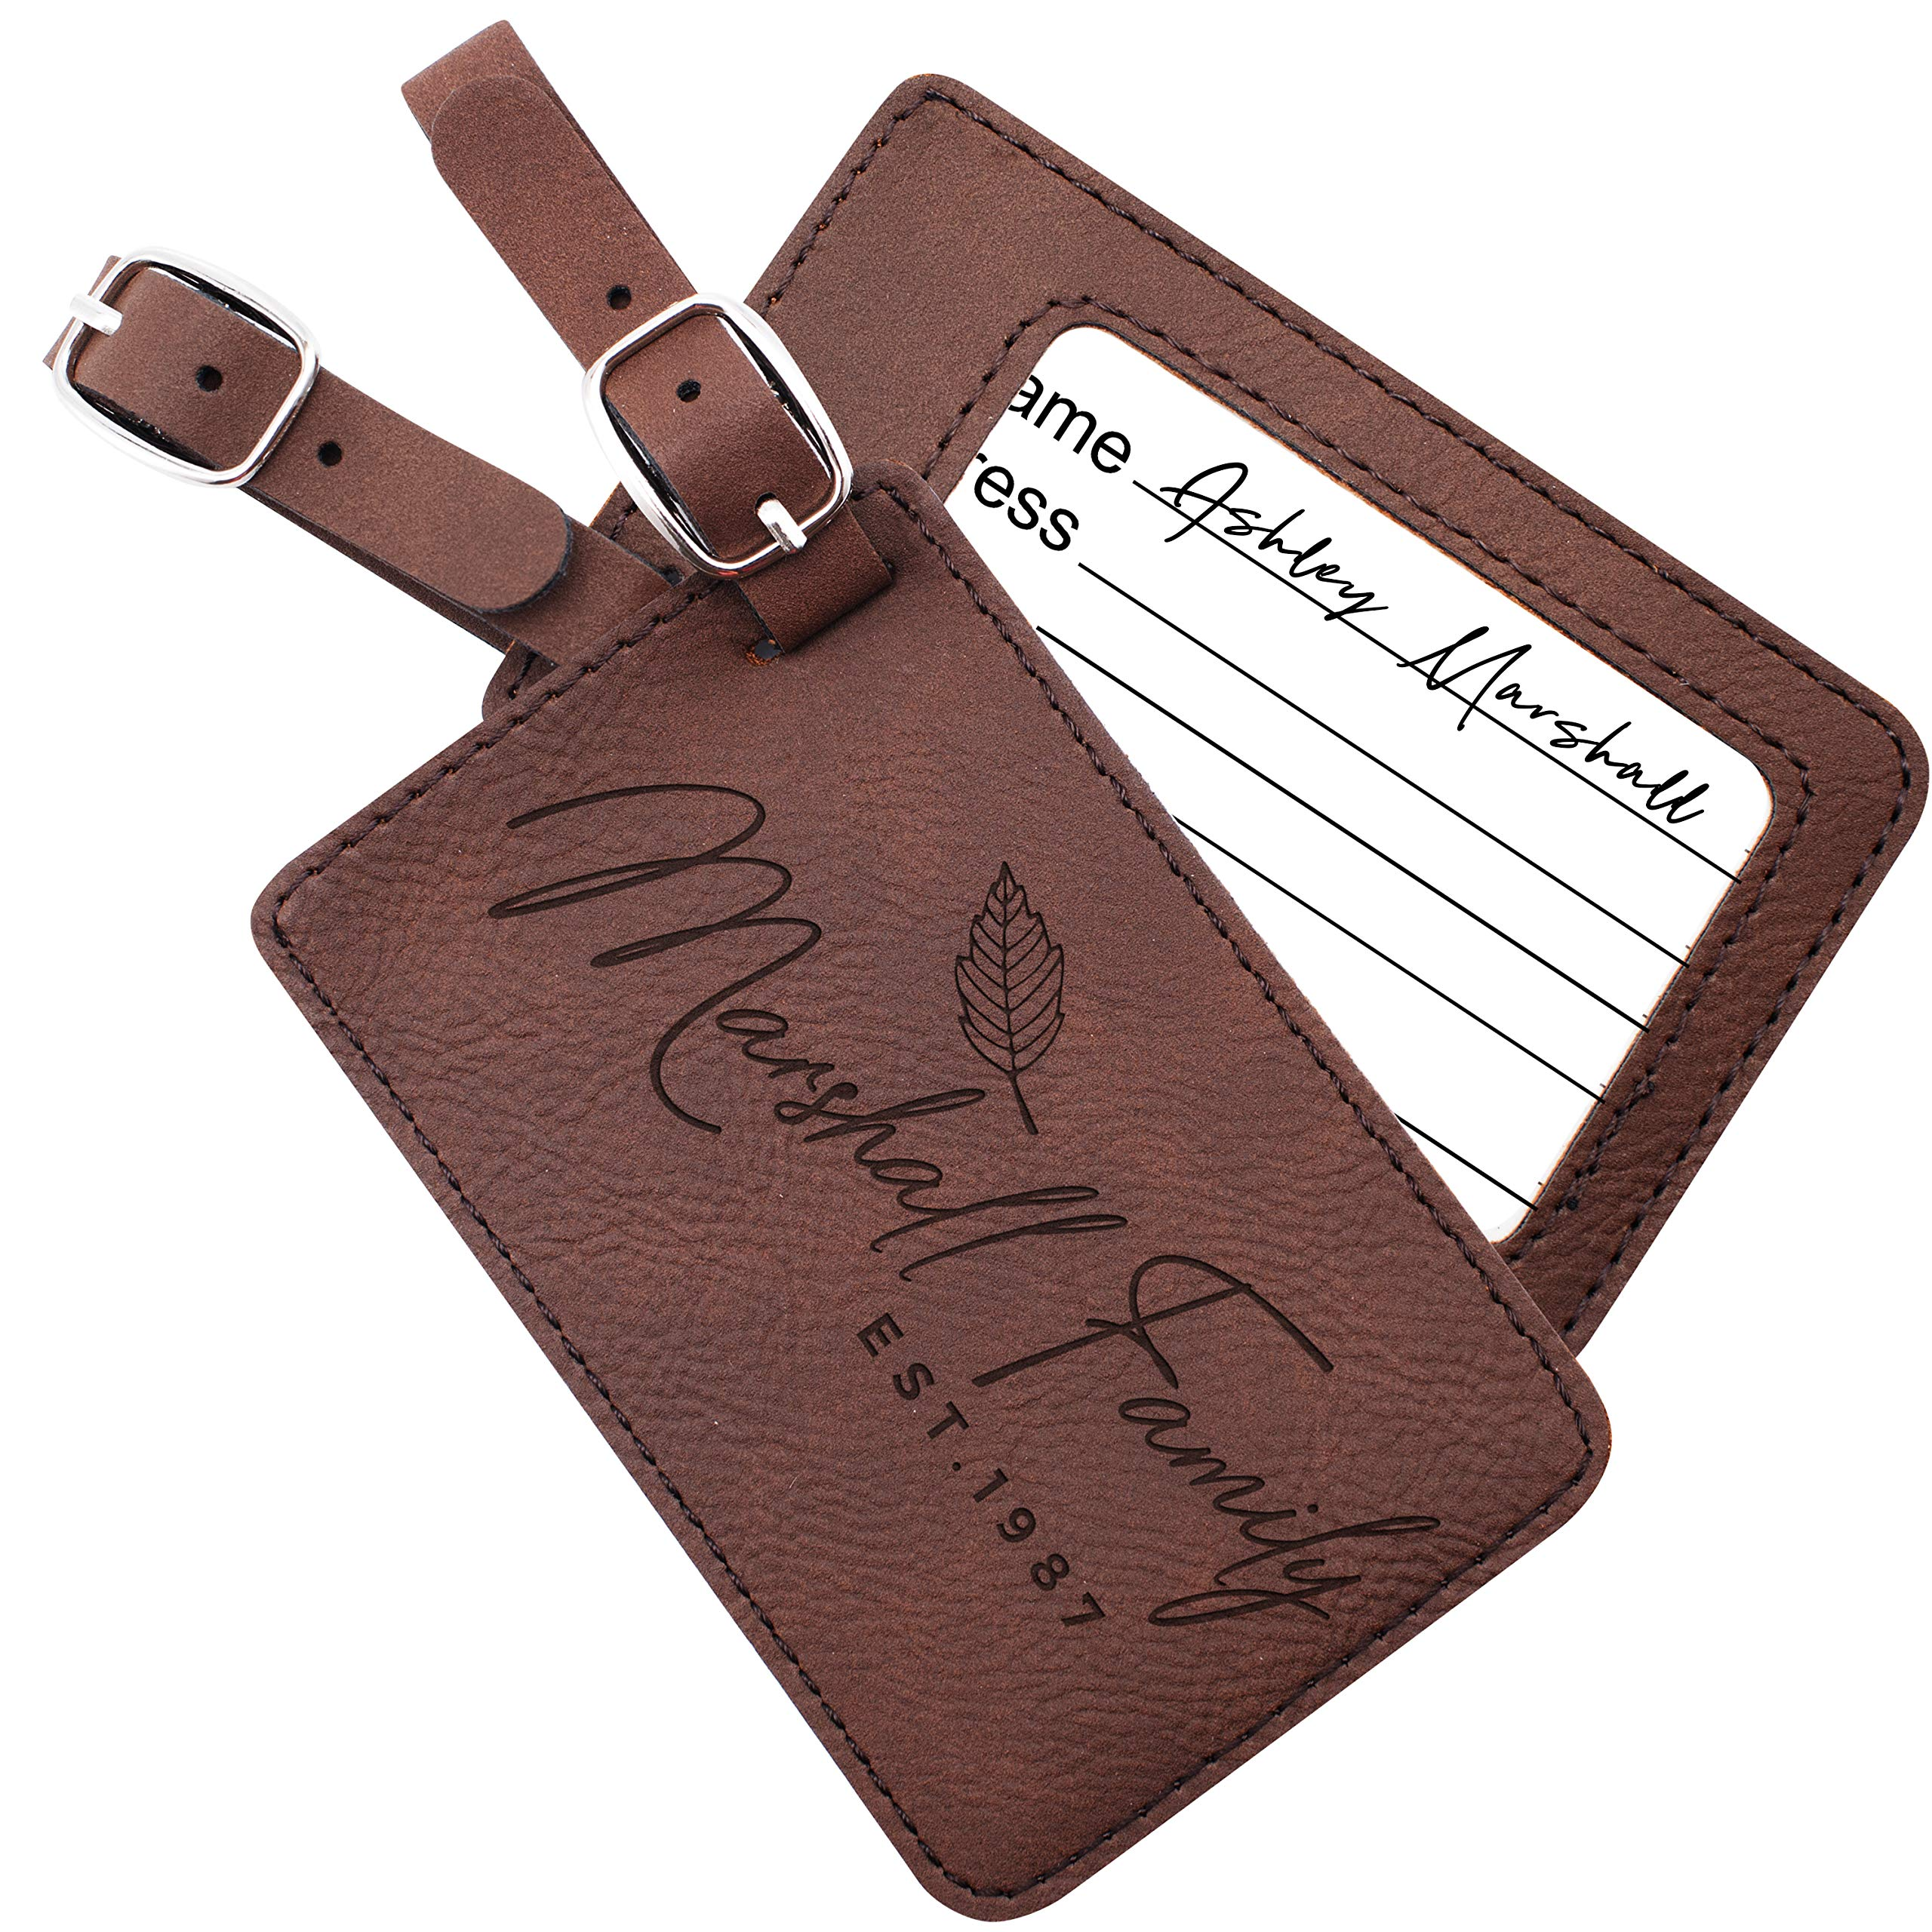 Luggage Tags Personalized Name Custom Cruise Tags For Women Men Kids Families | 6 Different Color Monogram Luggage Name Tag Christmas Gifts For Travelers Leatherette Suitcase Tag Travel Bag Label #10